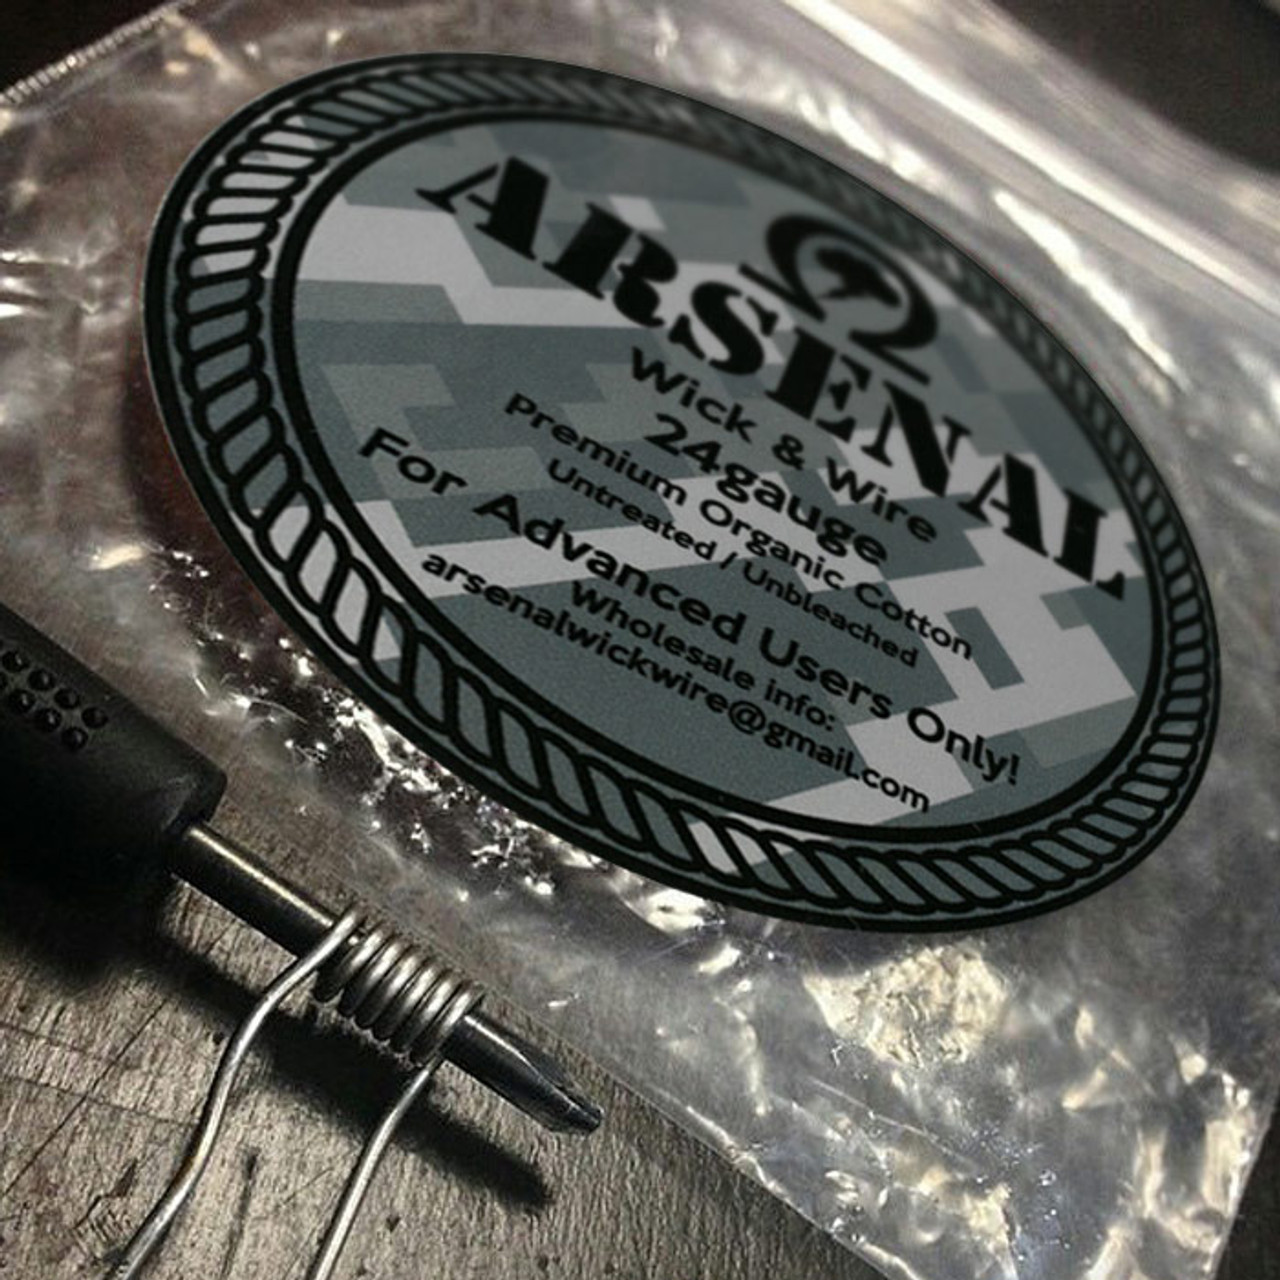 22G Wire | Arsenal Wick And Wire 20g 22g 24g And 26g